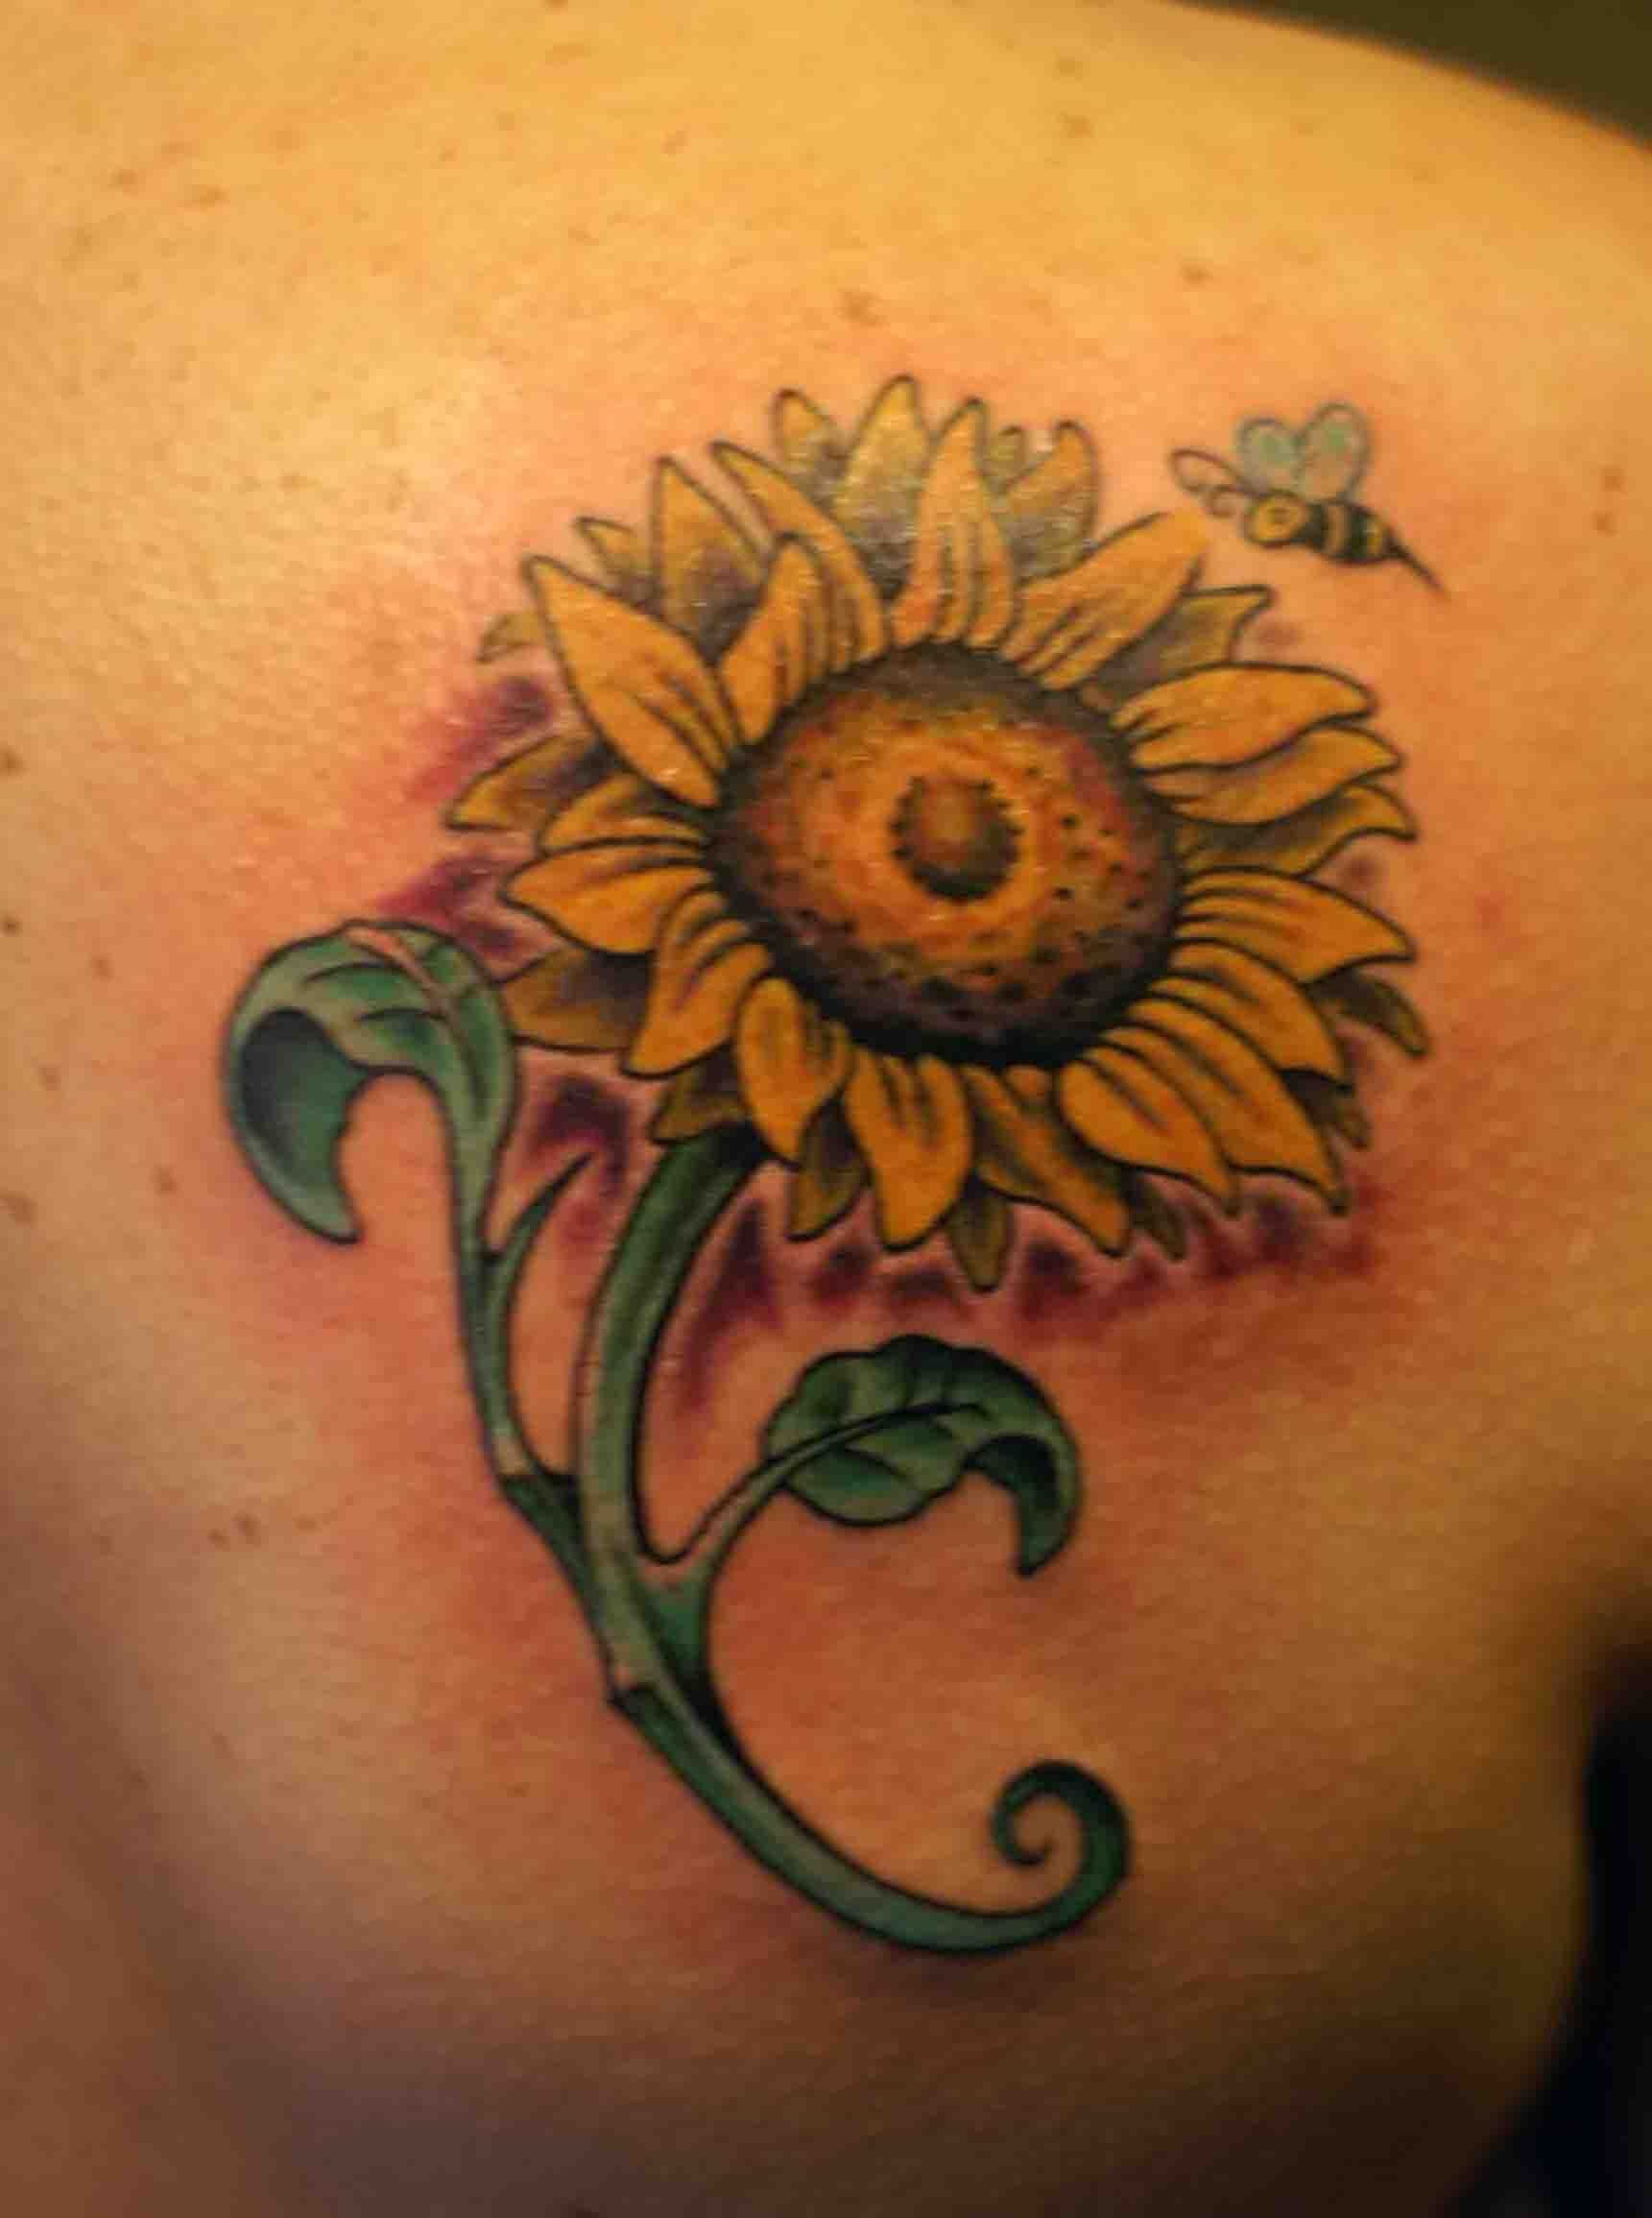 Small sunflower tattoo sunflower tattoos designs ideas and flower tattoos izmirmasajfo Image collections